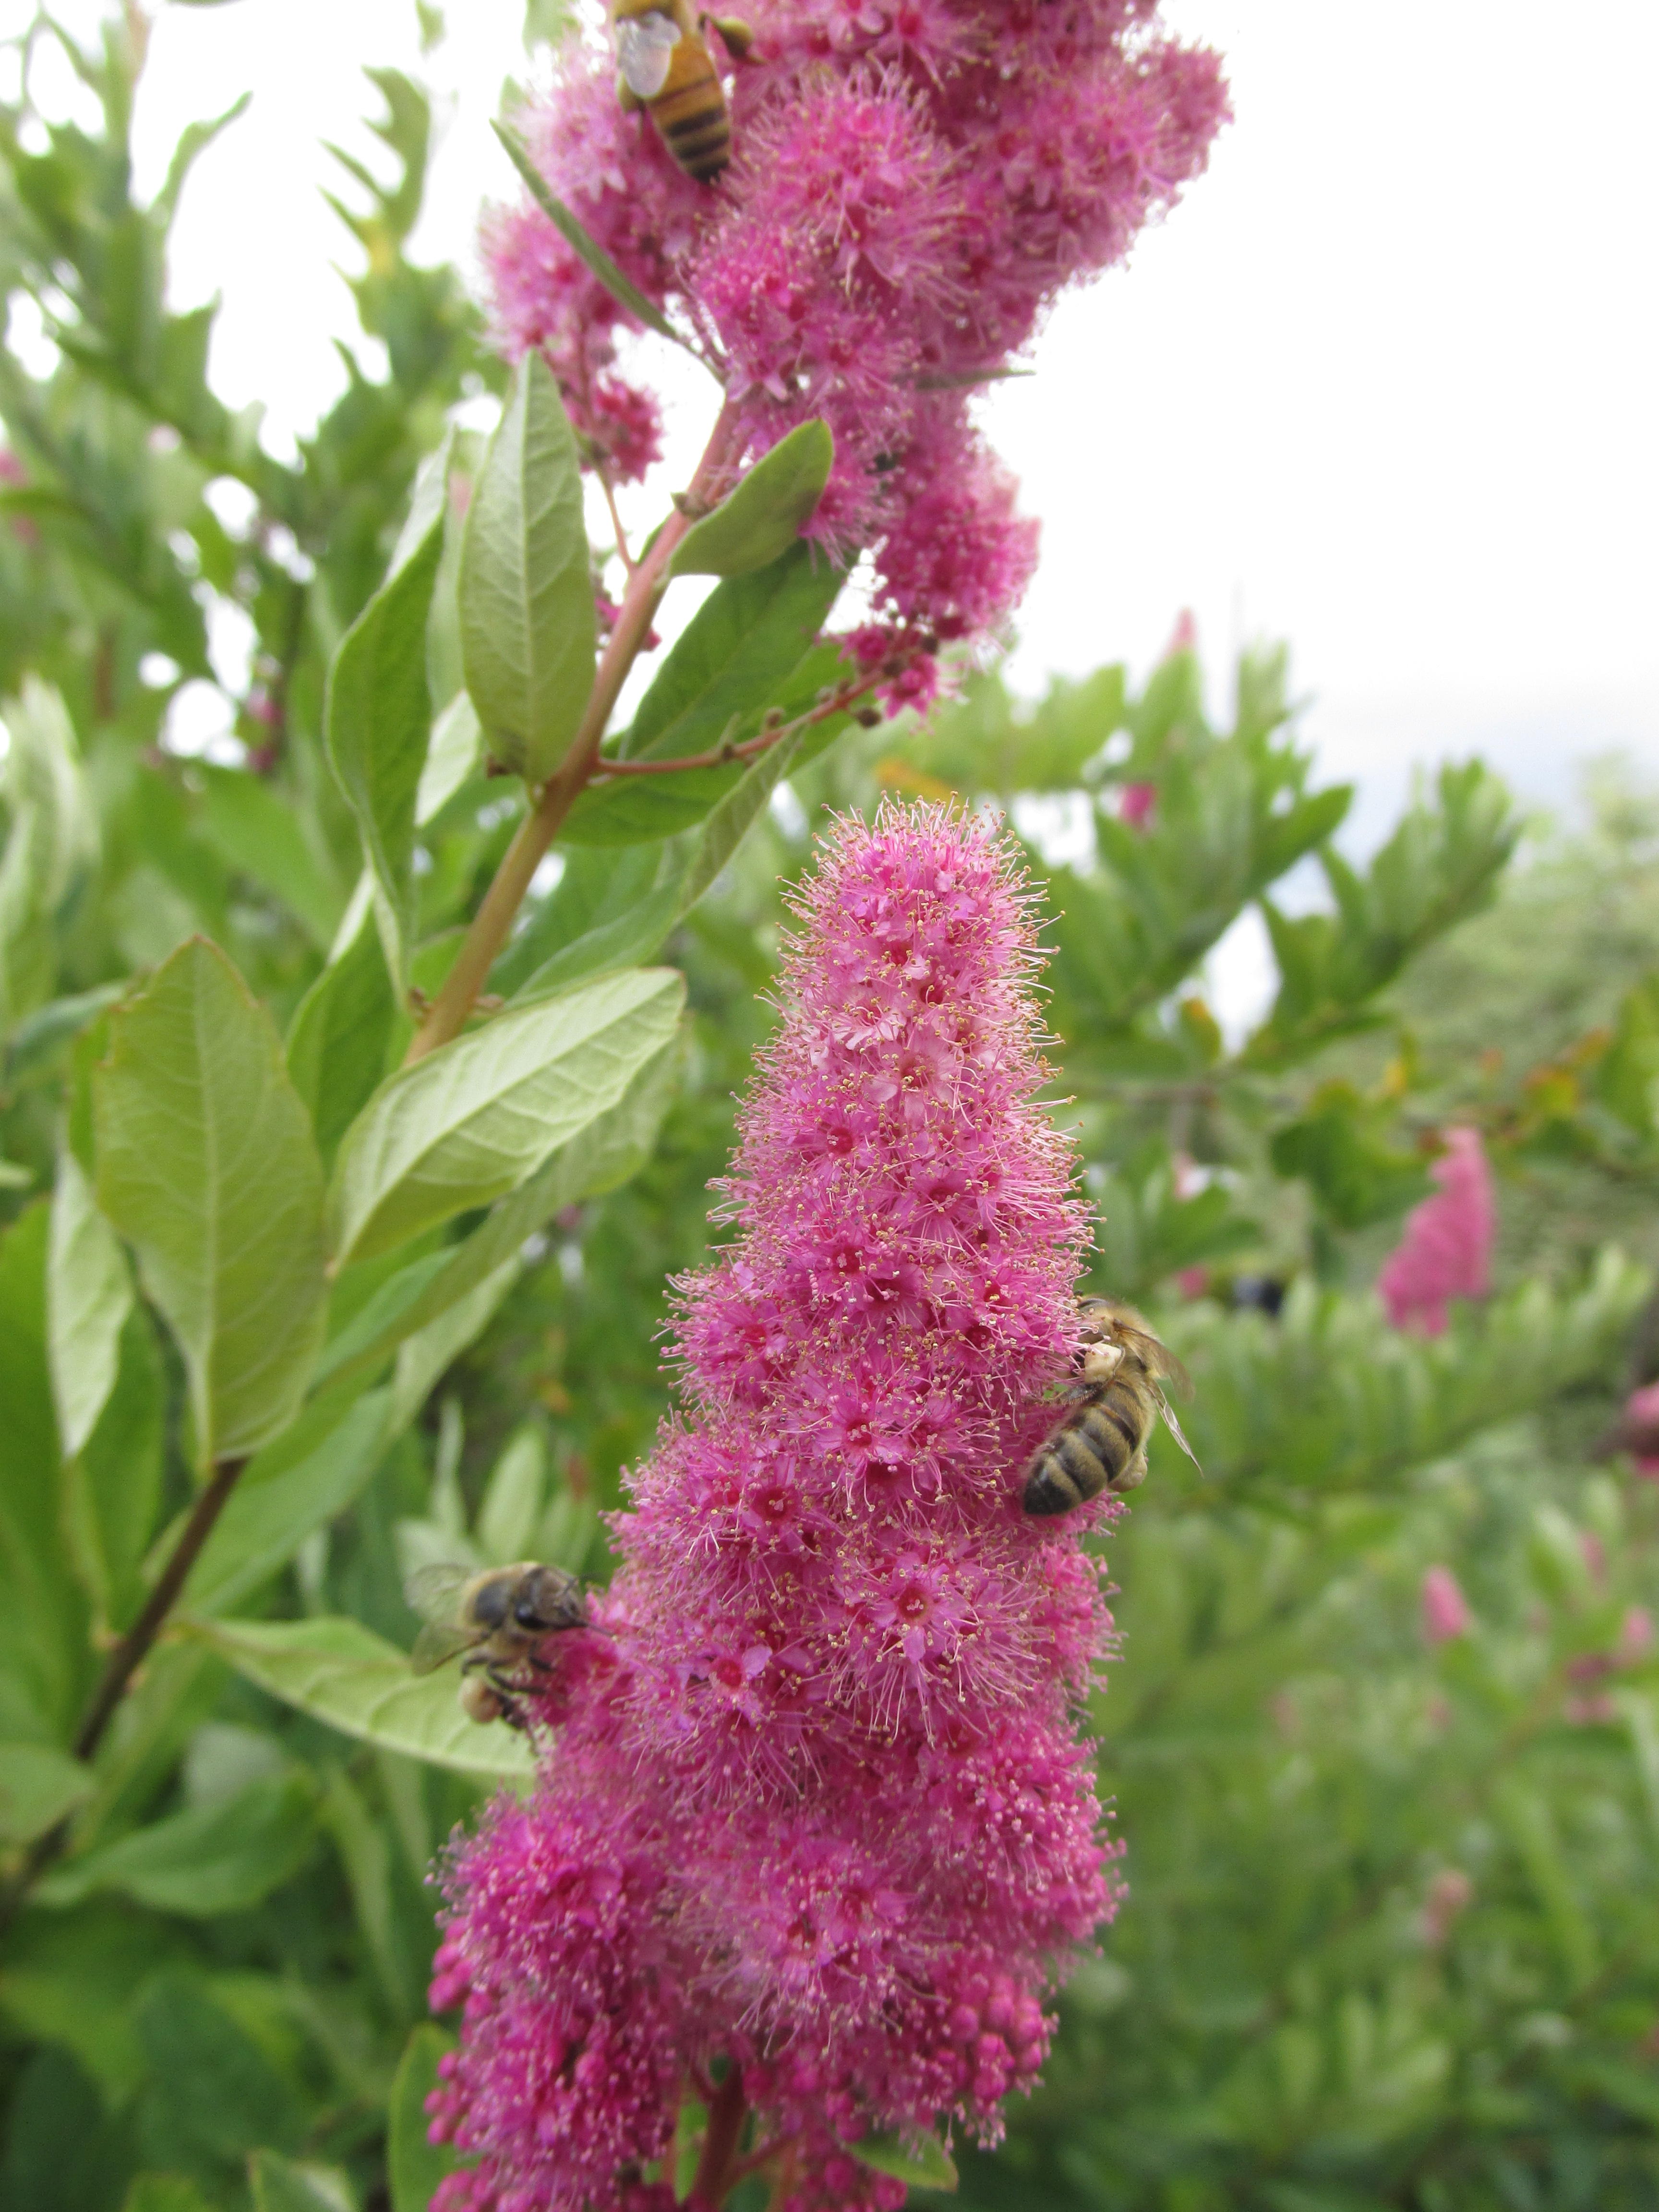 Pollinators on spirea flowers